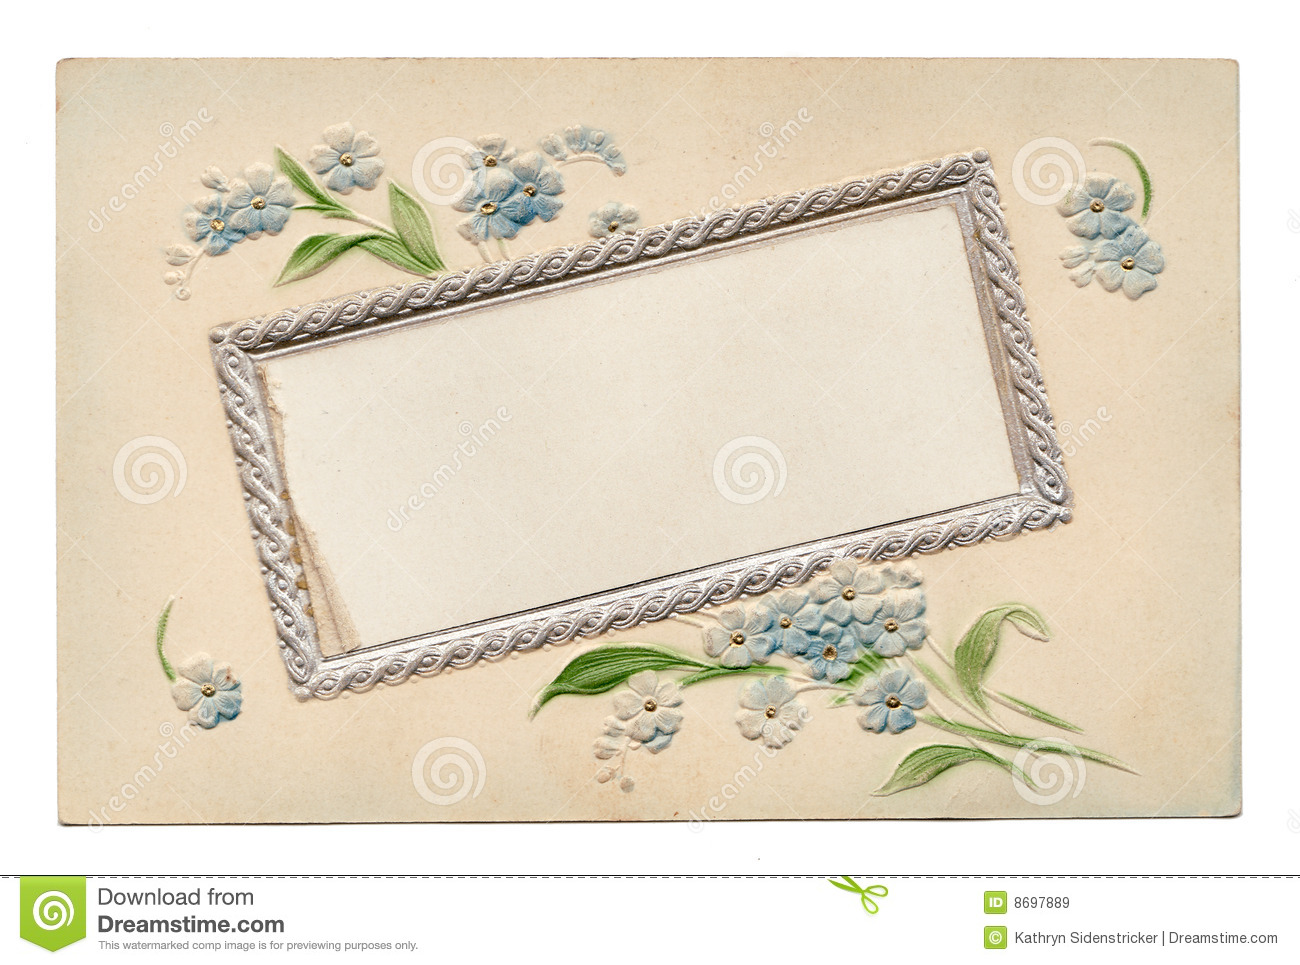 Italian handwritten postcard letter stock photo image 39254147 - Blank Vintage Floral Postcard 1910 S Royalty Free Stock Images